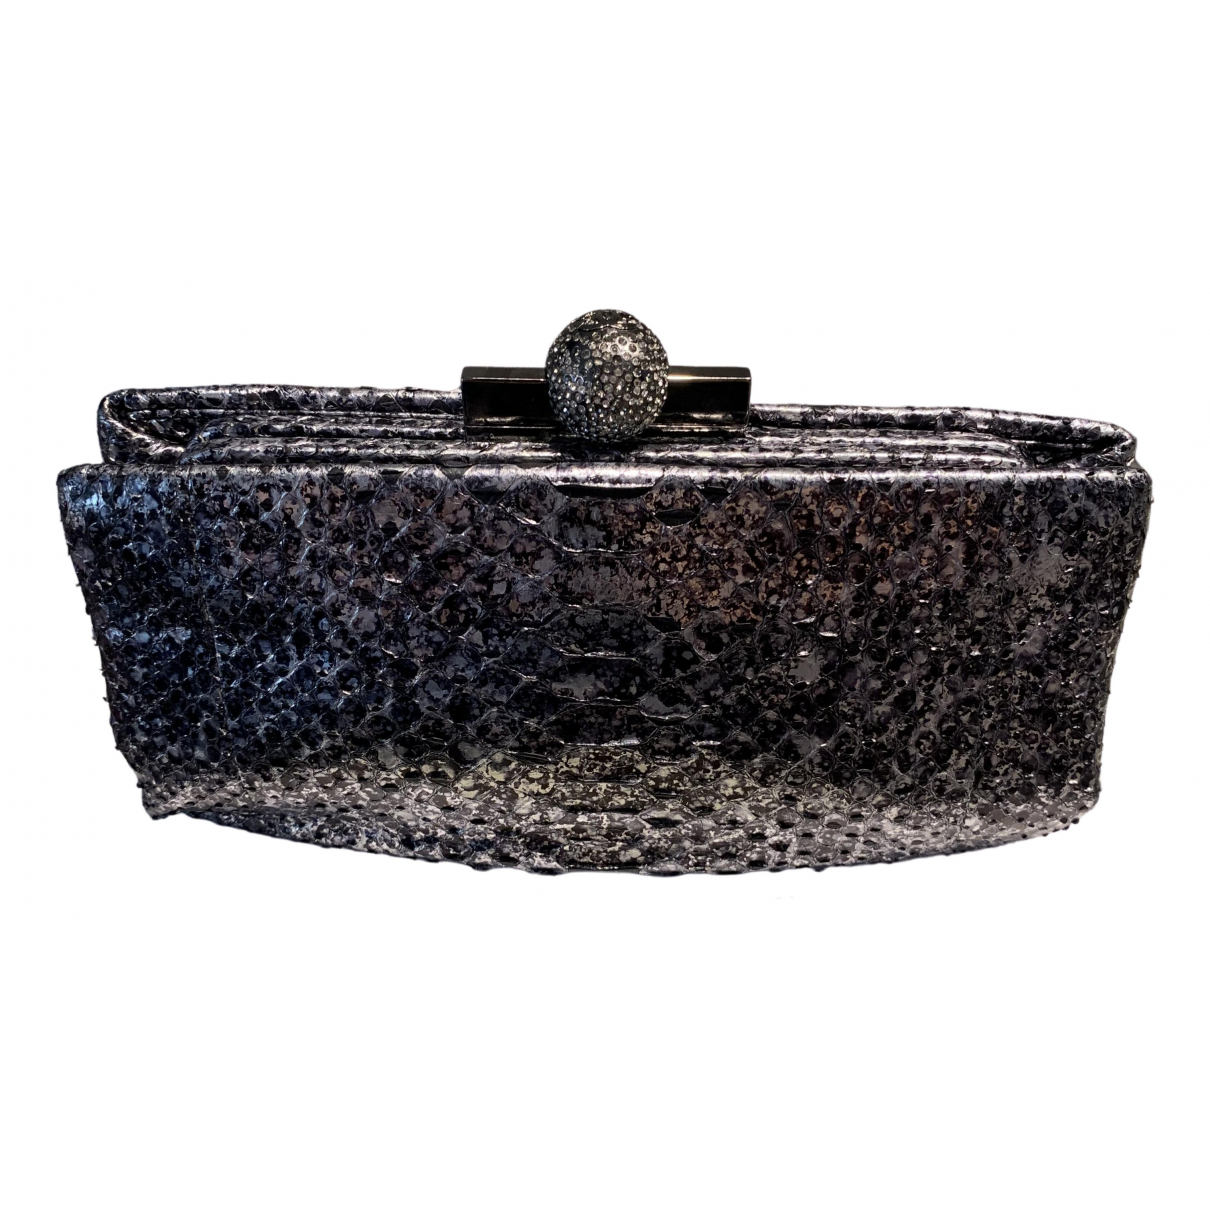 Chanel \N Clutch in  Metallic Python